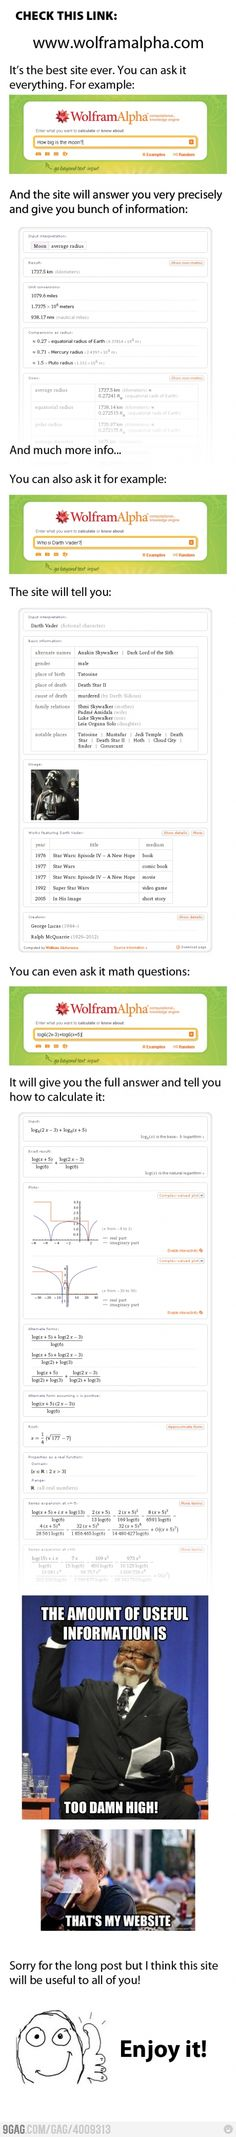 Wolfram Alpha=The best website ever.  Seriously...check it out!!!!